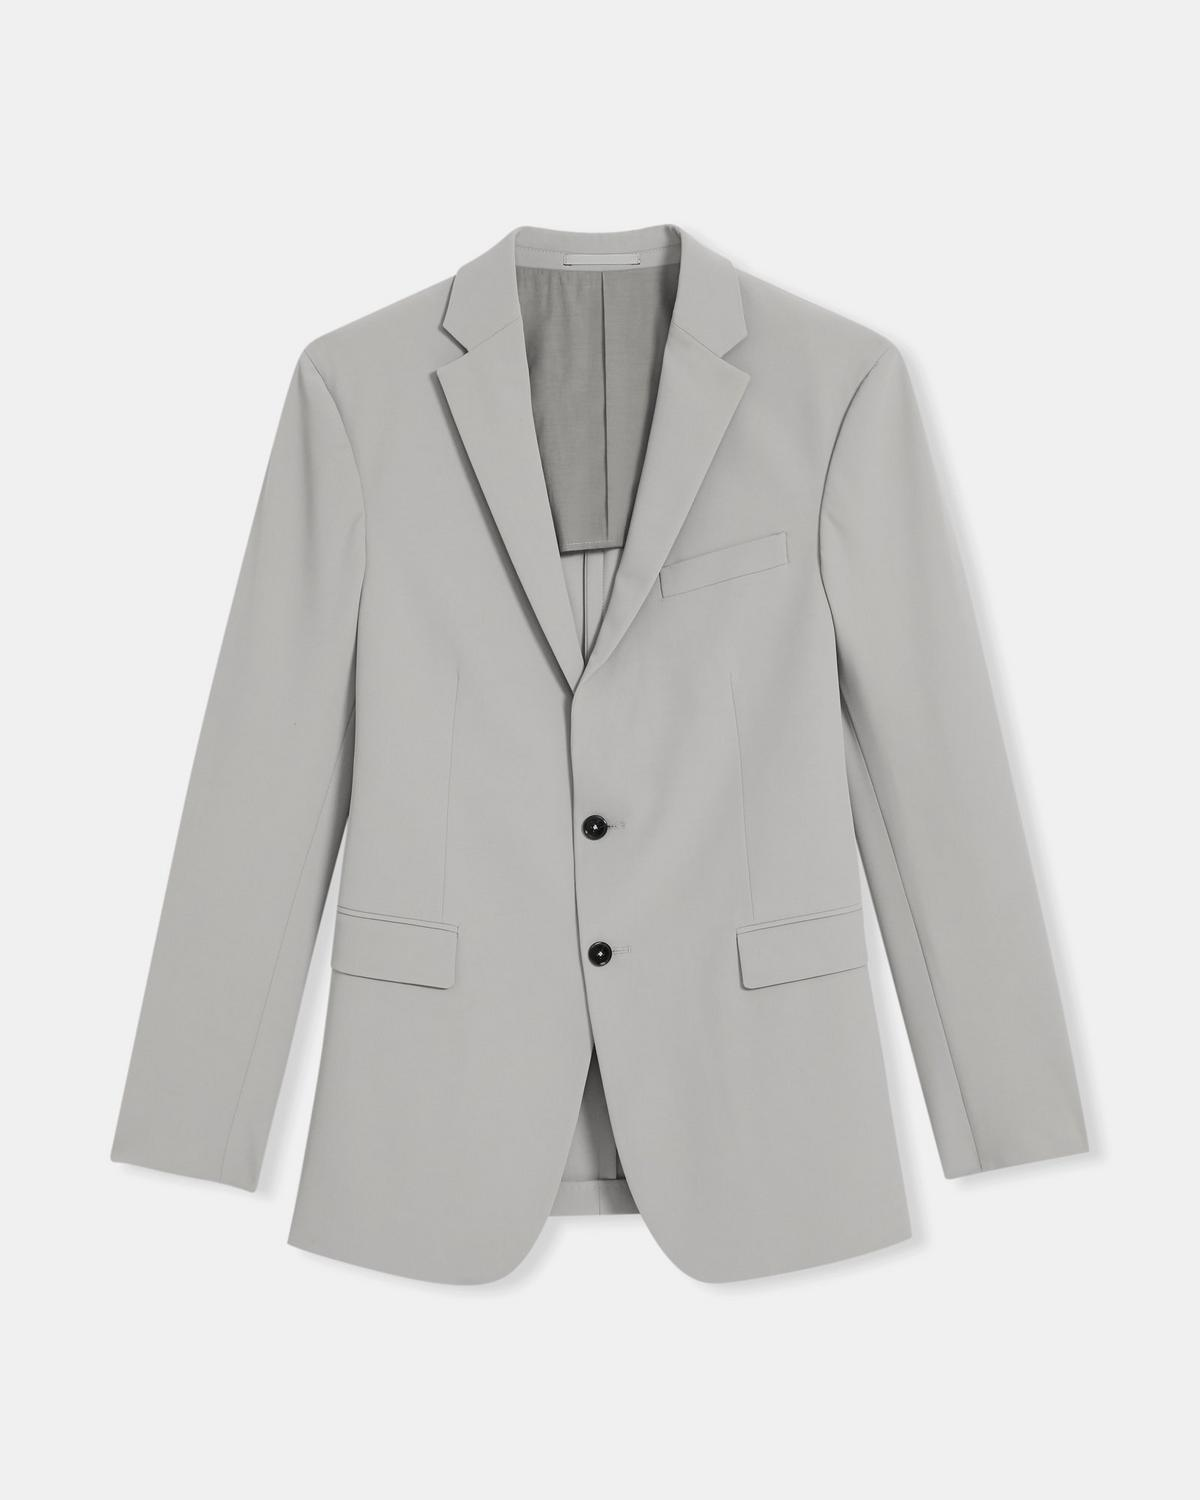 Bowery Blazer in Saronni Tech